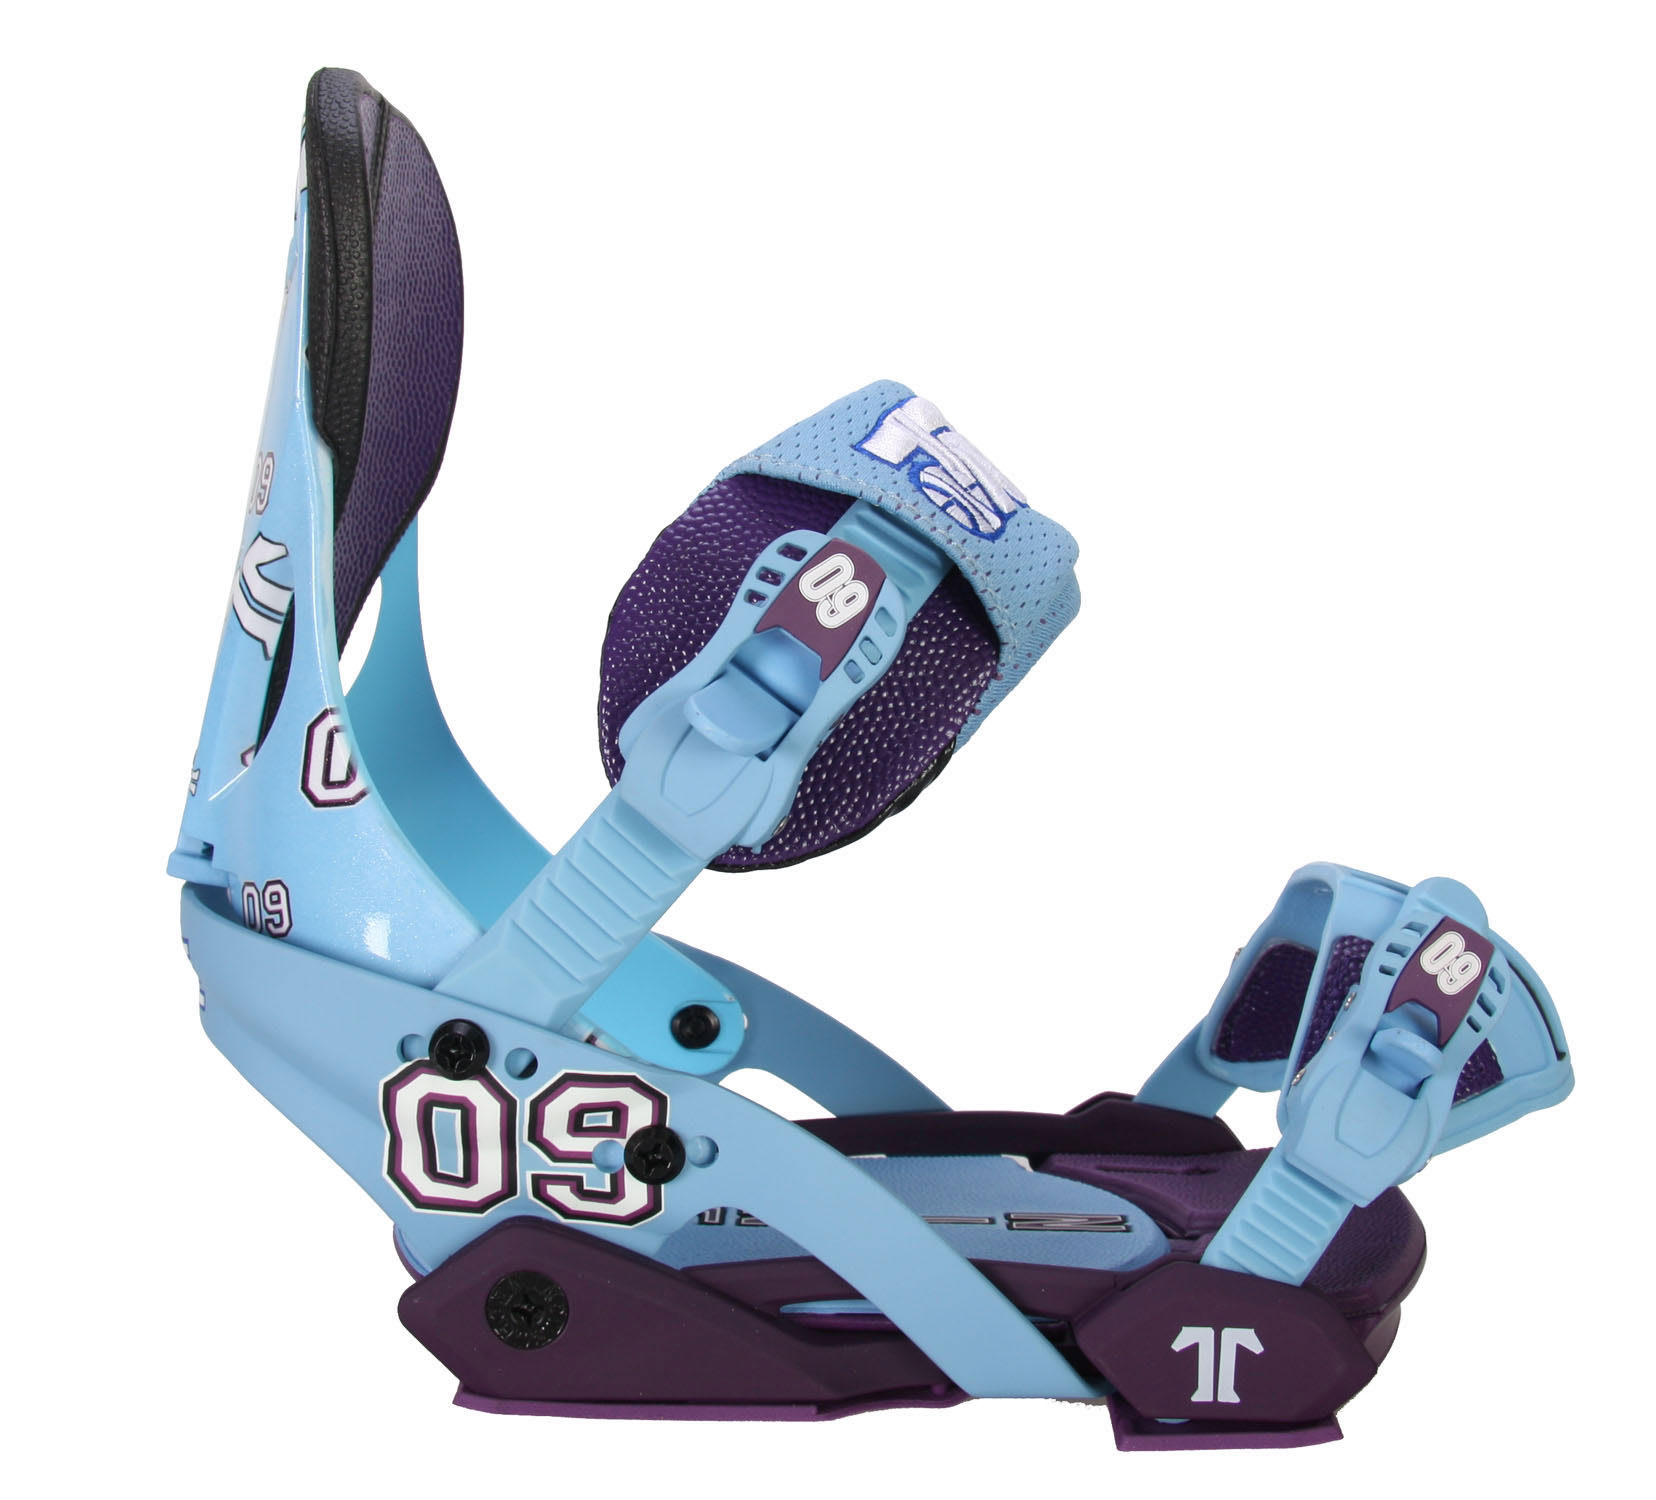 Shop for Technine Baller Pro Snowboard Bindings Jazz - Men's